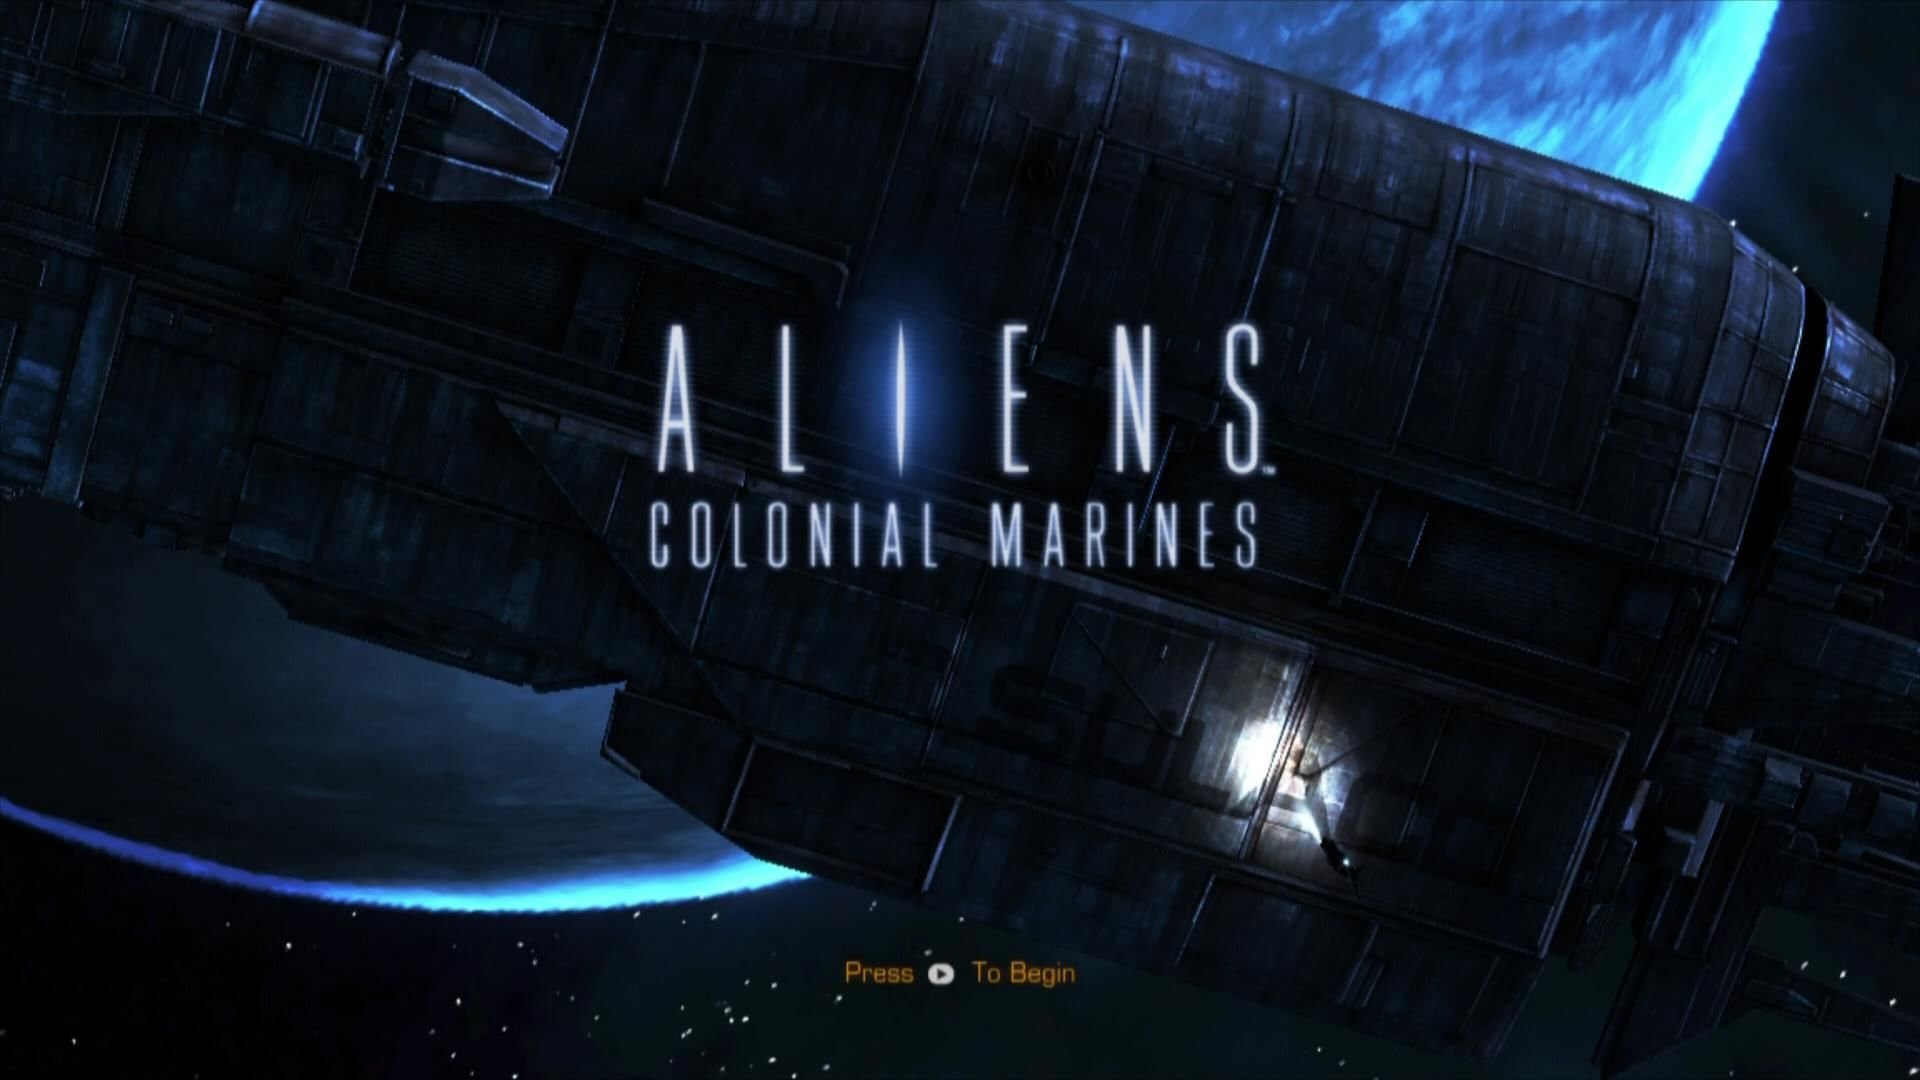 Aliens: Colonial Marines Xbox 360 Title screen... check the name of the ship in the background!